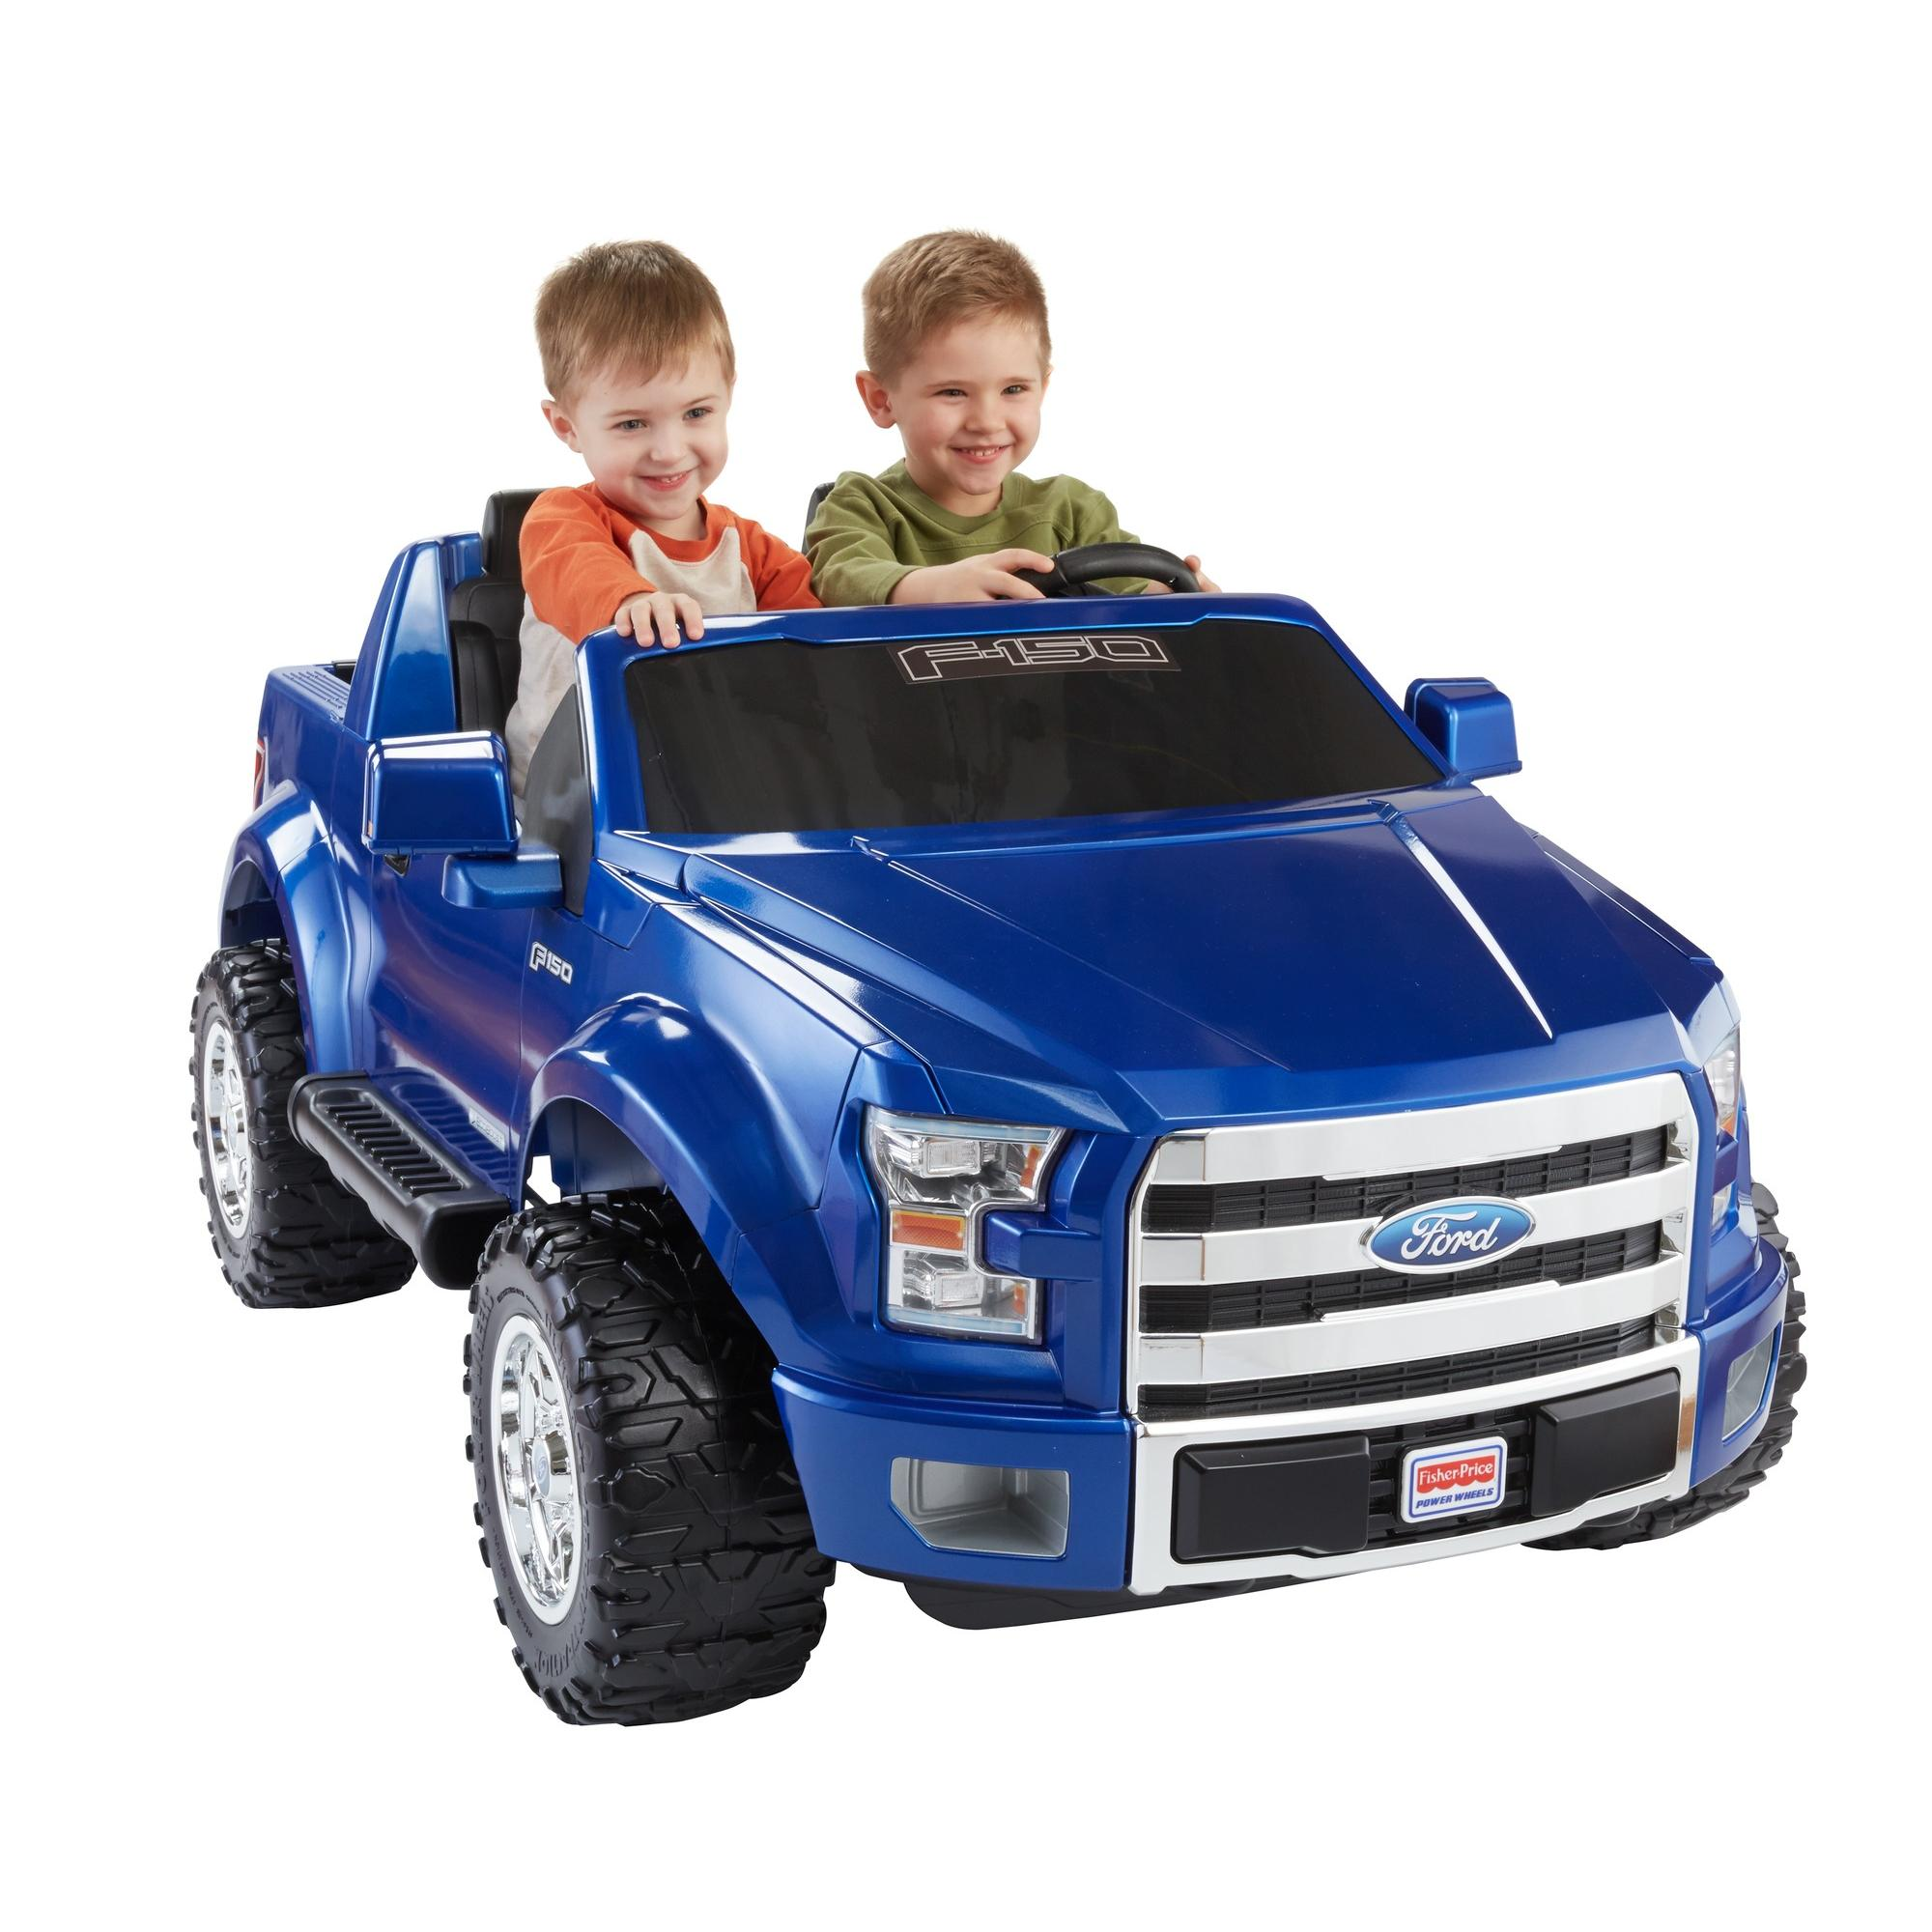 Wheels Ford F 150 12 V Battery Ed Ride On Vehicle Blue